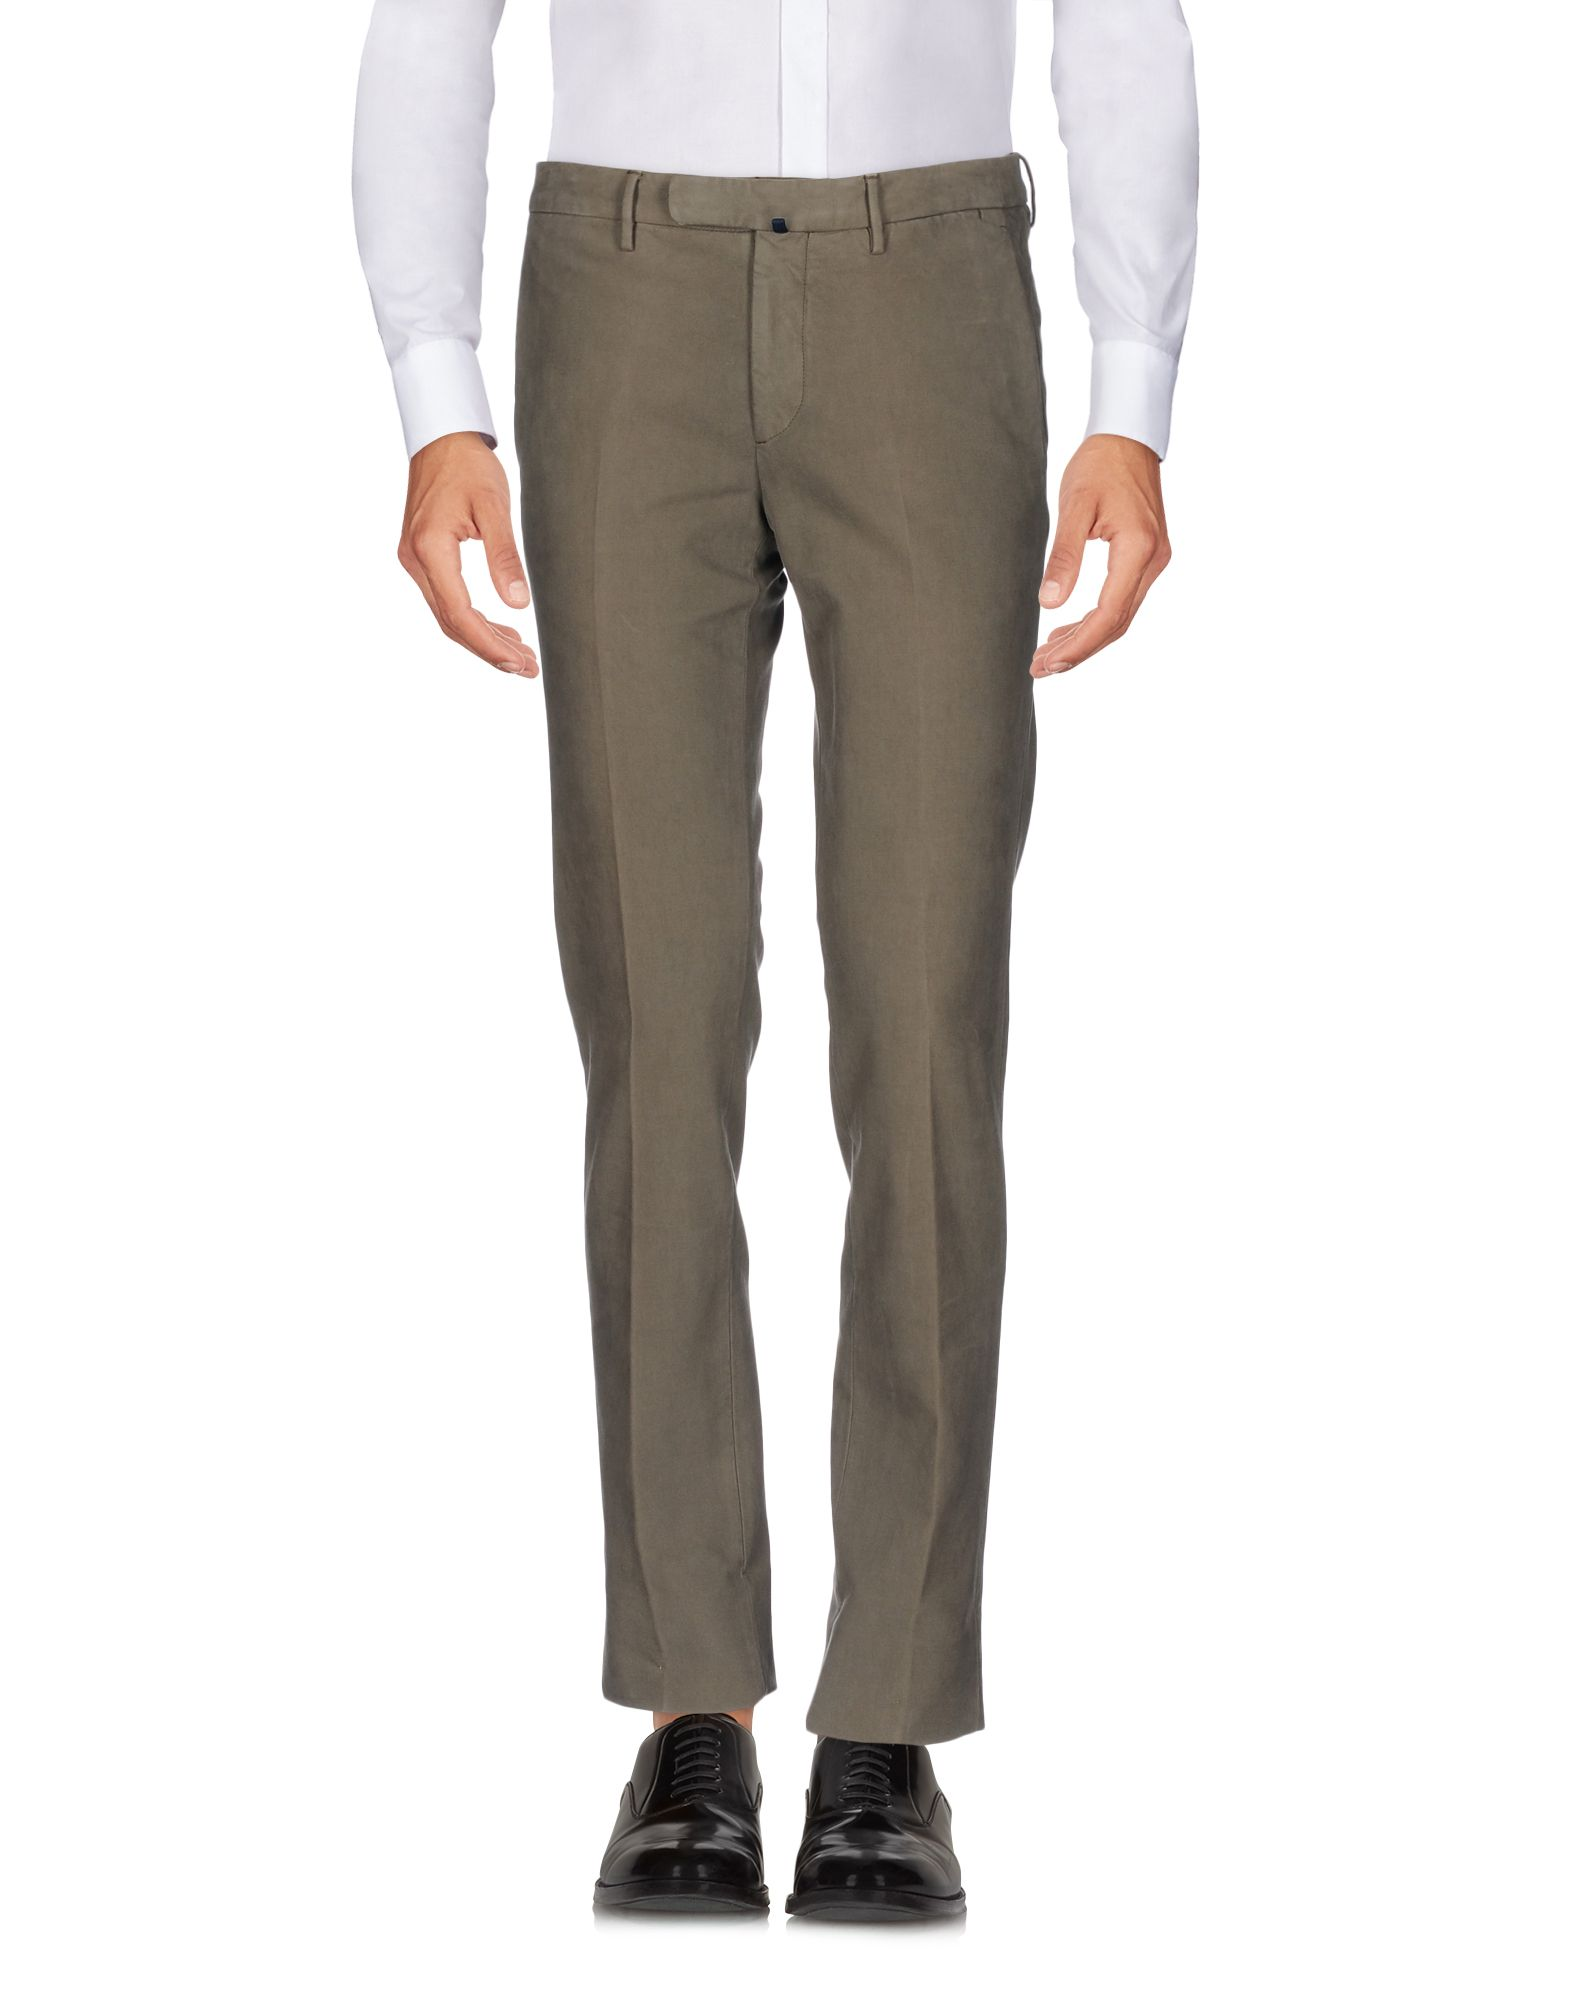 SOLD OUT         Pantalone Incotex Uomo - Acquista online su